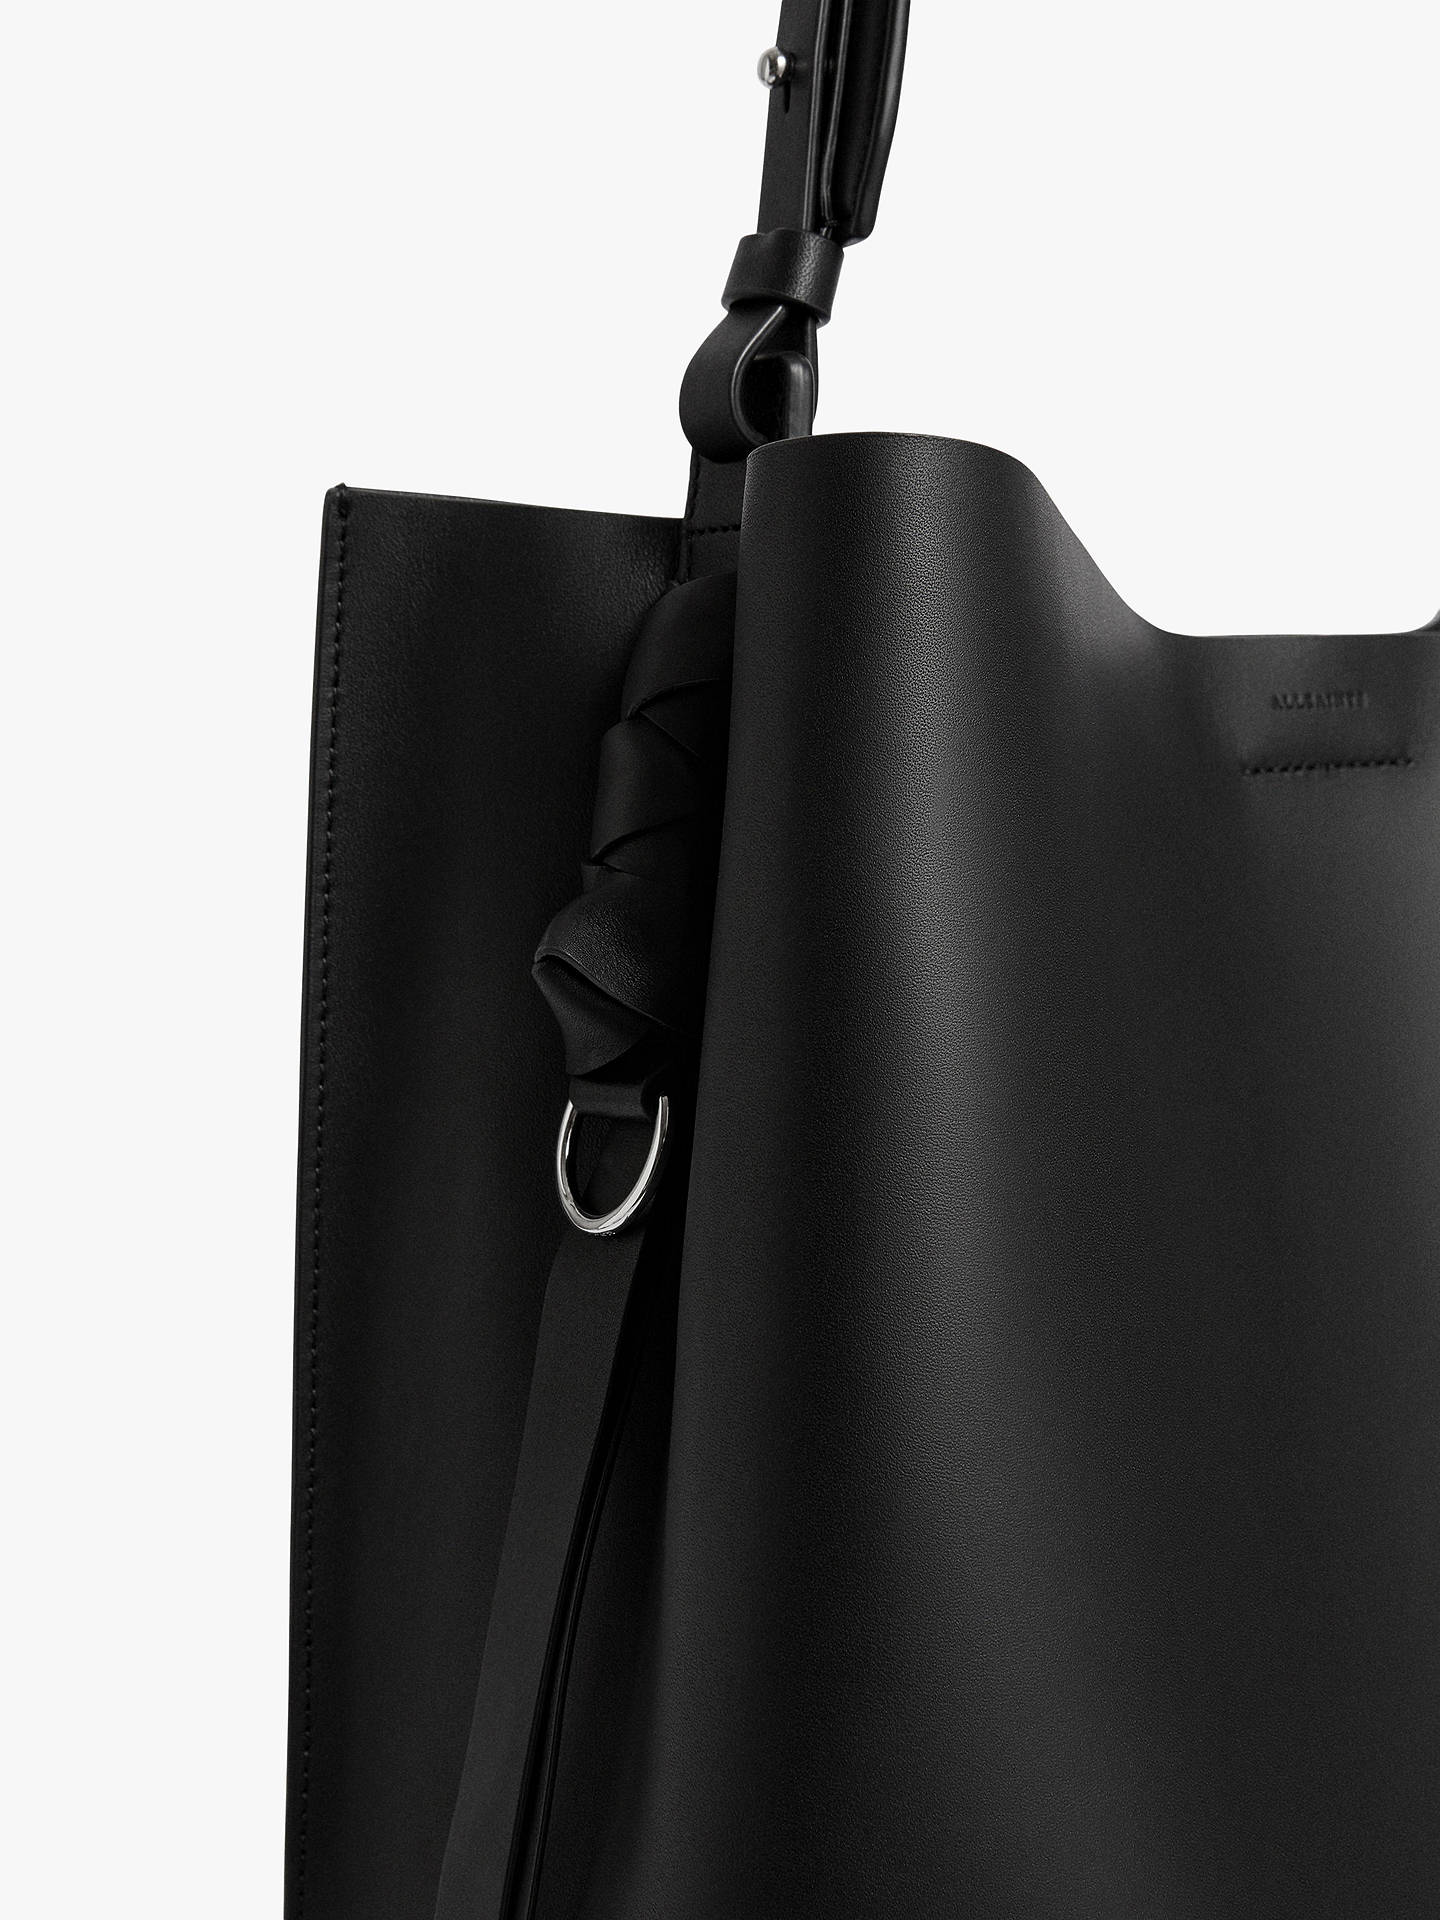 38c48b9887b5 AllSaints Voltaire North South Leather Tote Bag at John Lewis   Partners